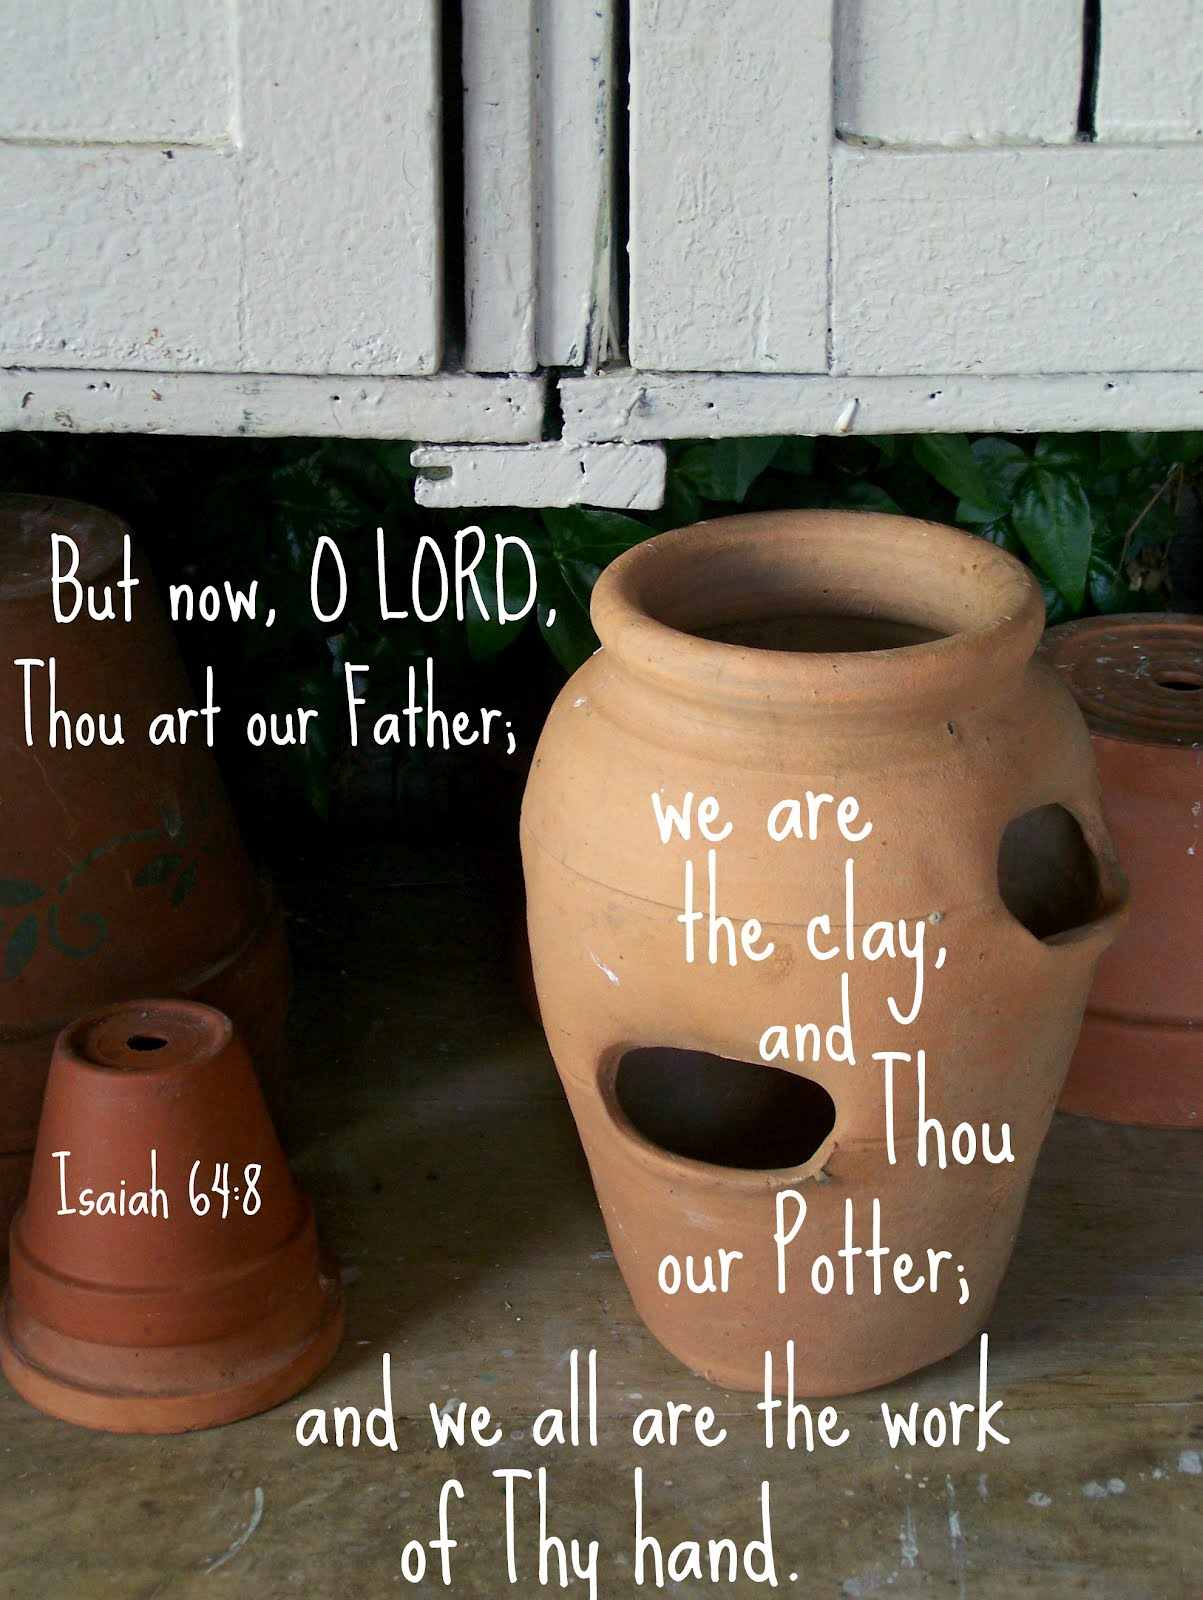 Shabby olde potting shed scripture pictures on ash wednesday scripture pictures on ash wednesday greetings and holykisses kristyandbryce Images